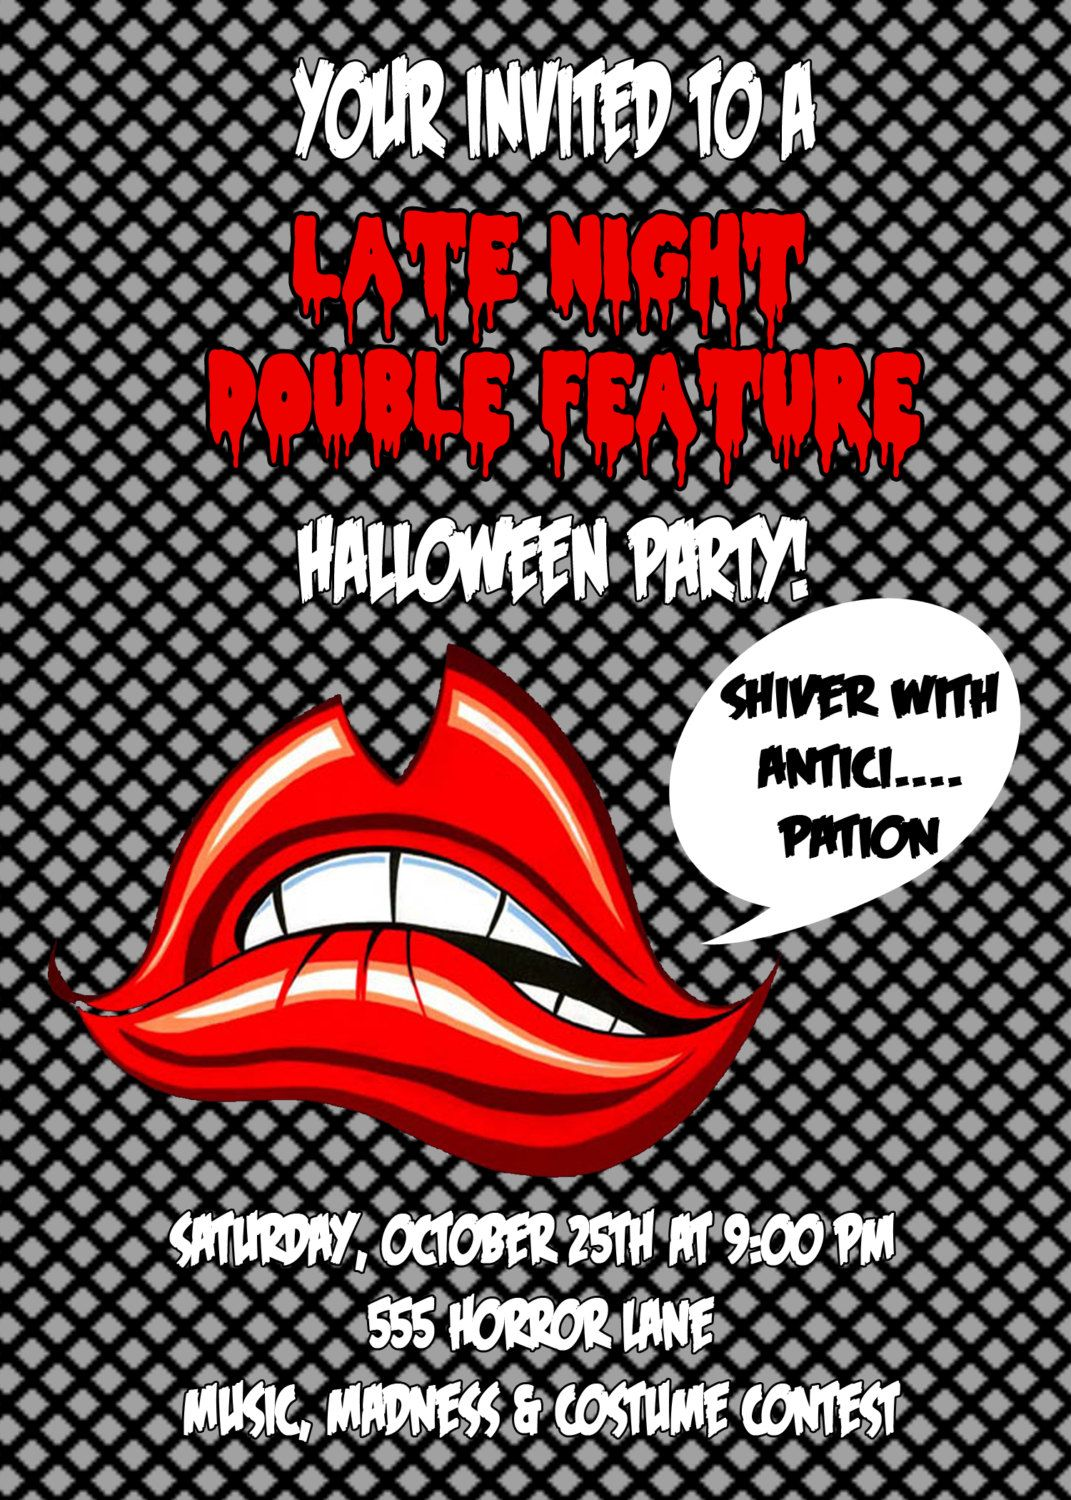 Rocky horror picture show Halloween invitations | Holidays ...